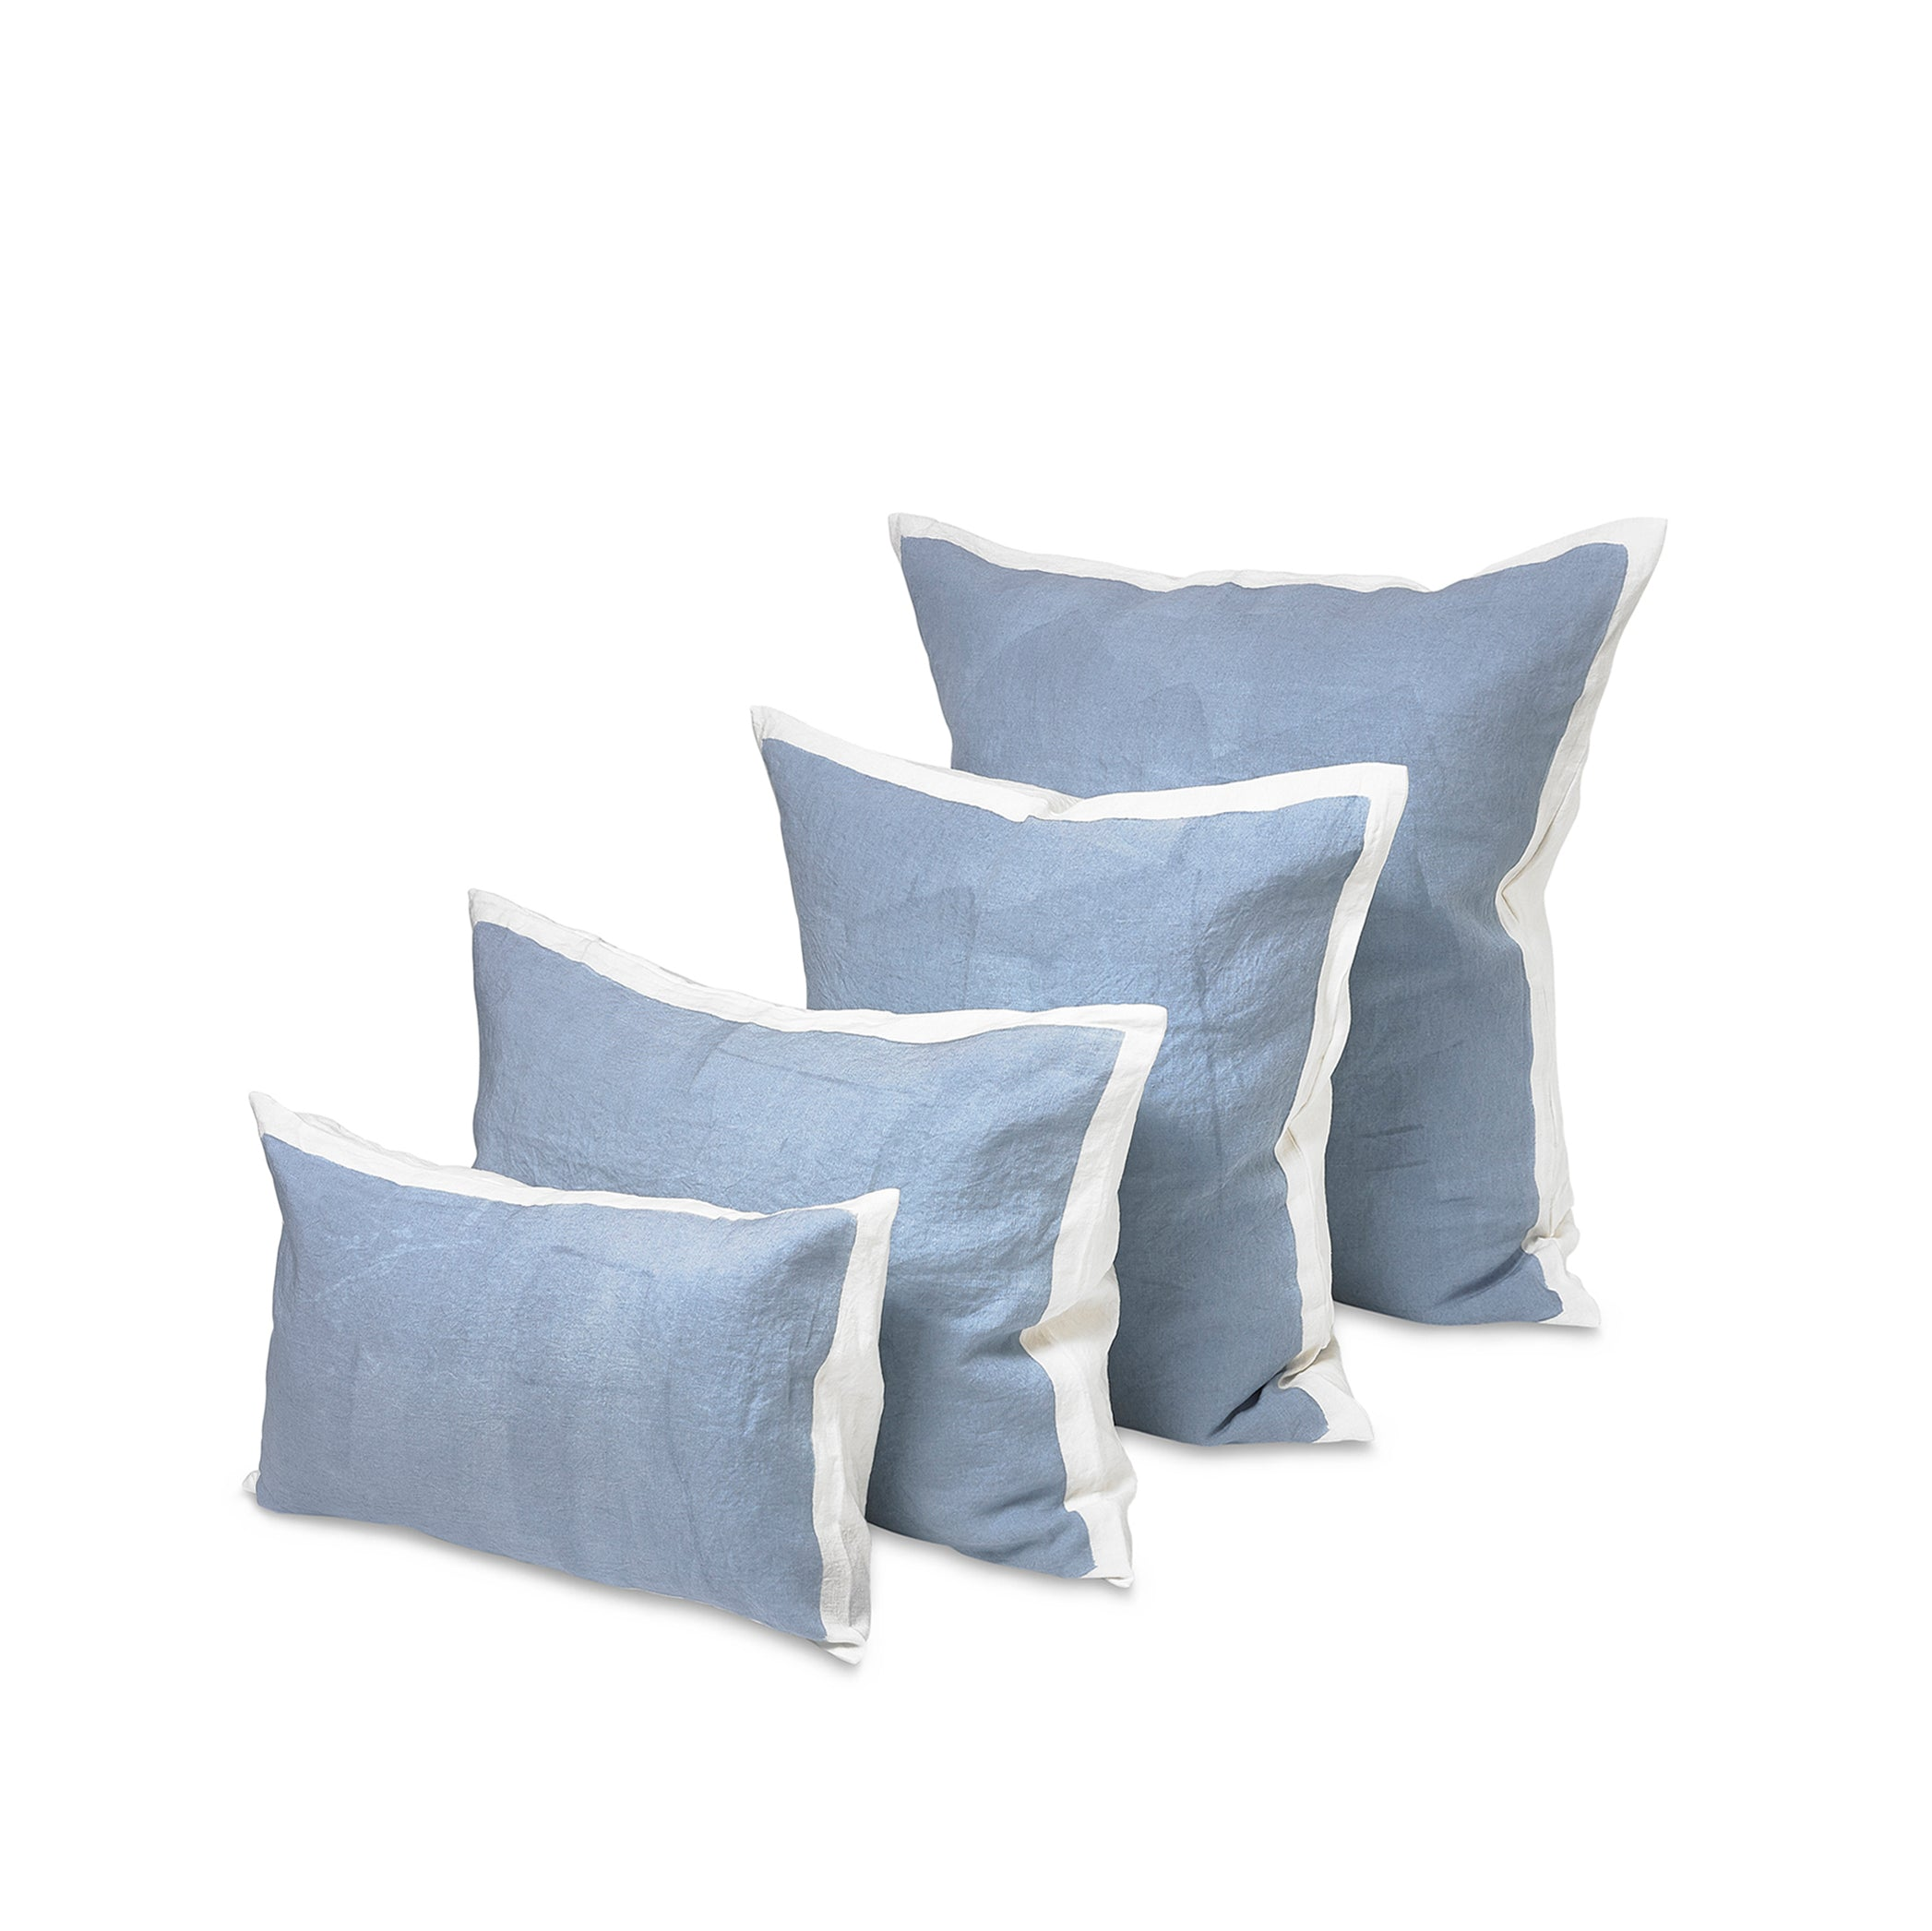 Hand Painted Linen Cushion in Pale Blue, 60cm x 60cm